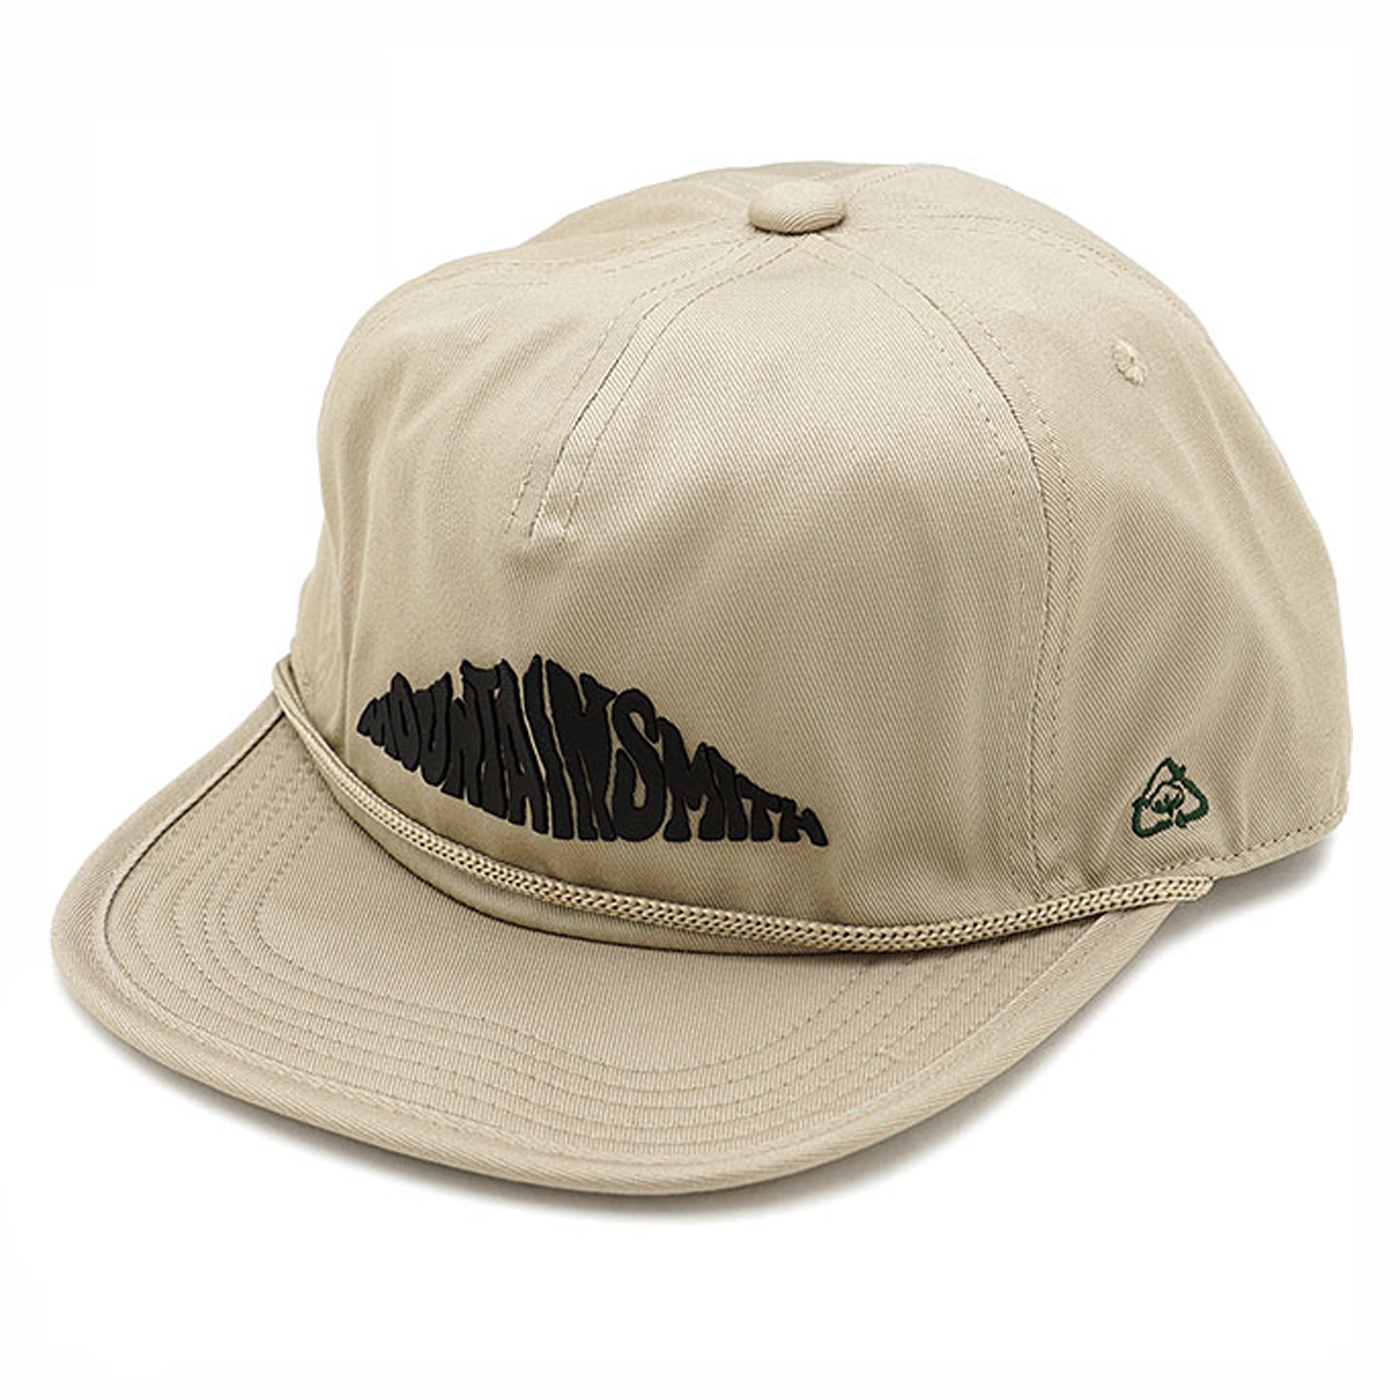 image: MS RECYCLED COTTON Golden CAP